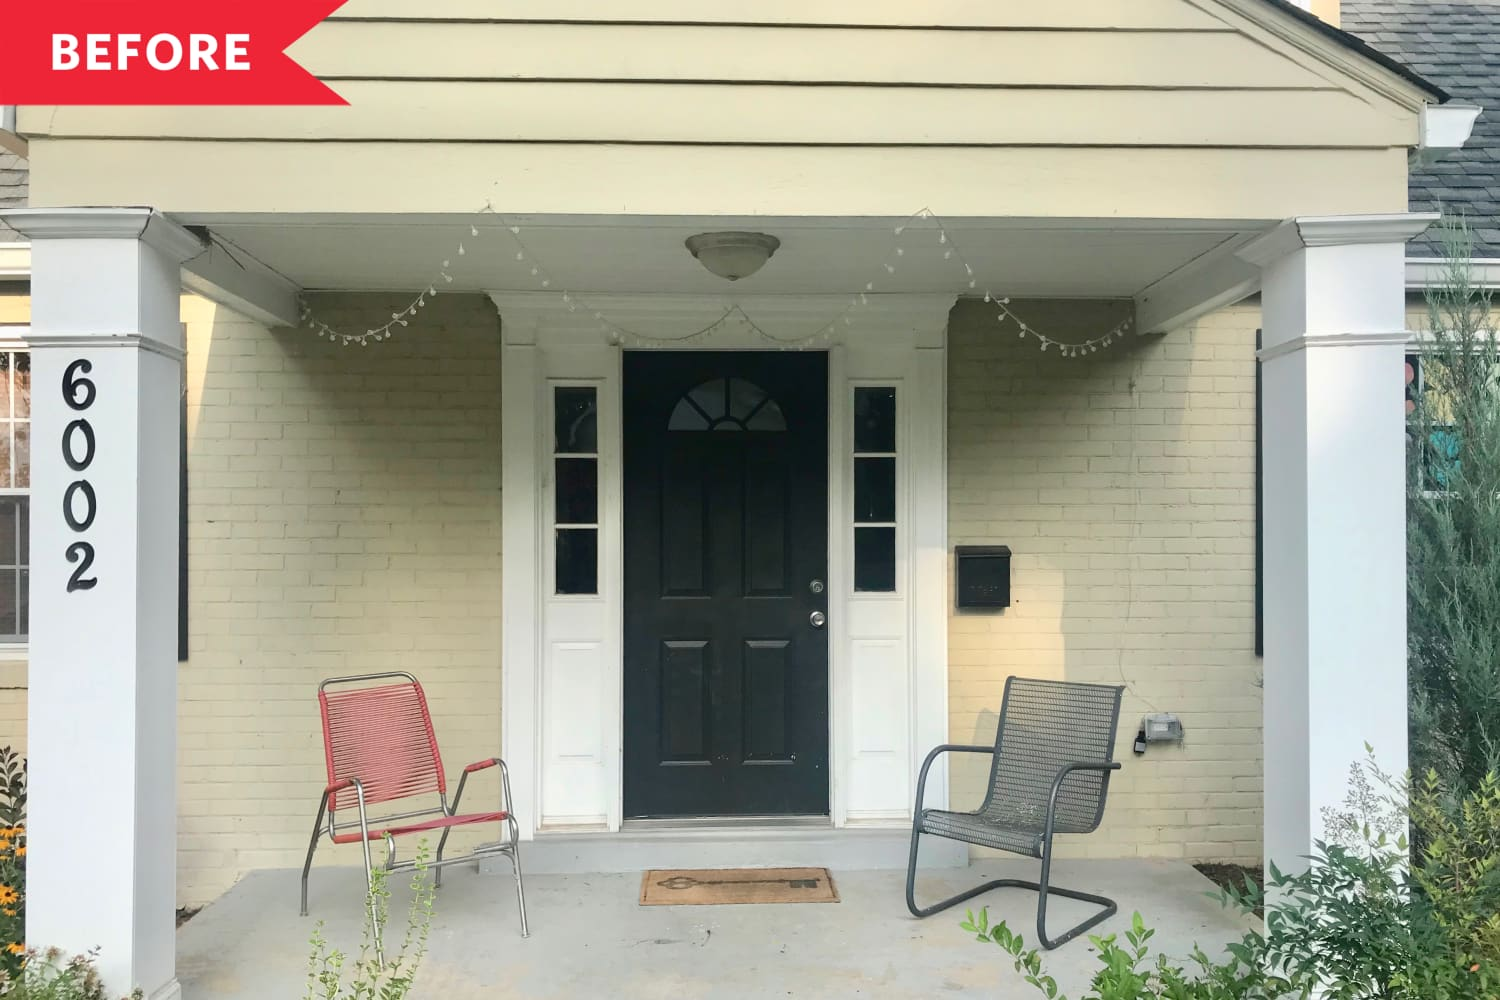 Before and After: A 1940s Front Porch Gets the Perfect Pop of Color in This Sophisticated $1,200 Refresh